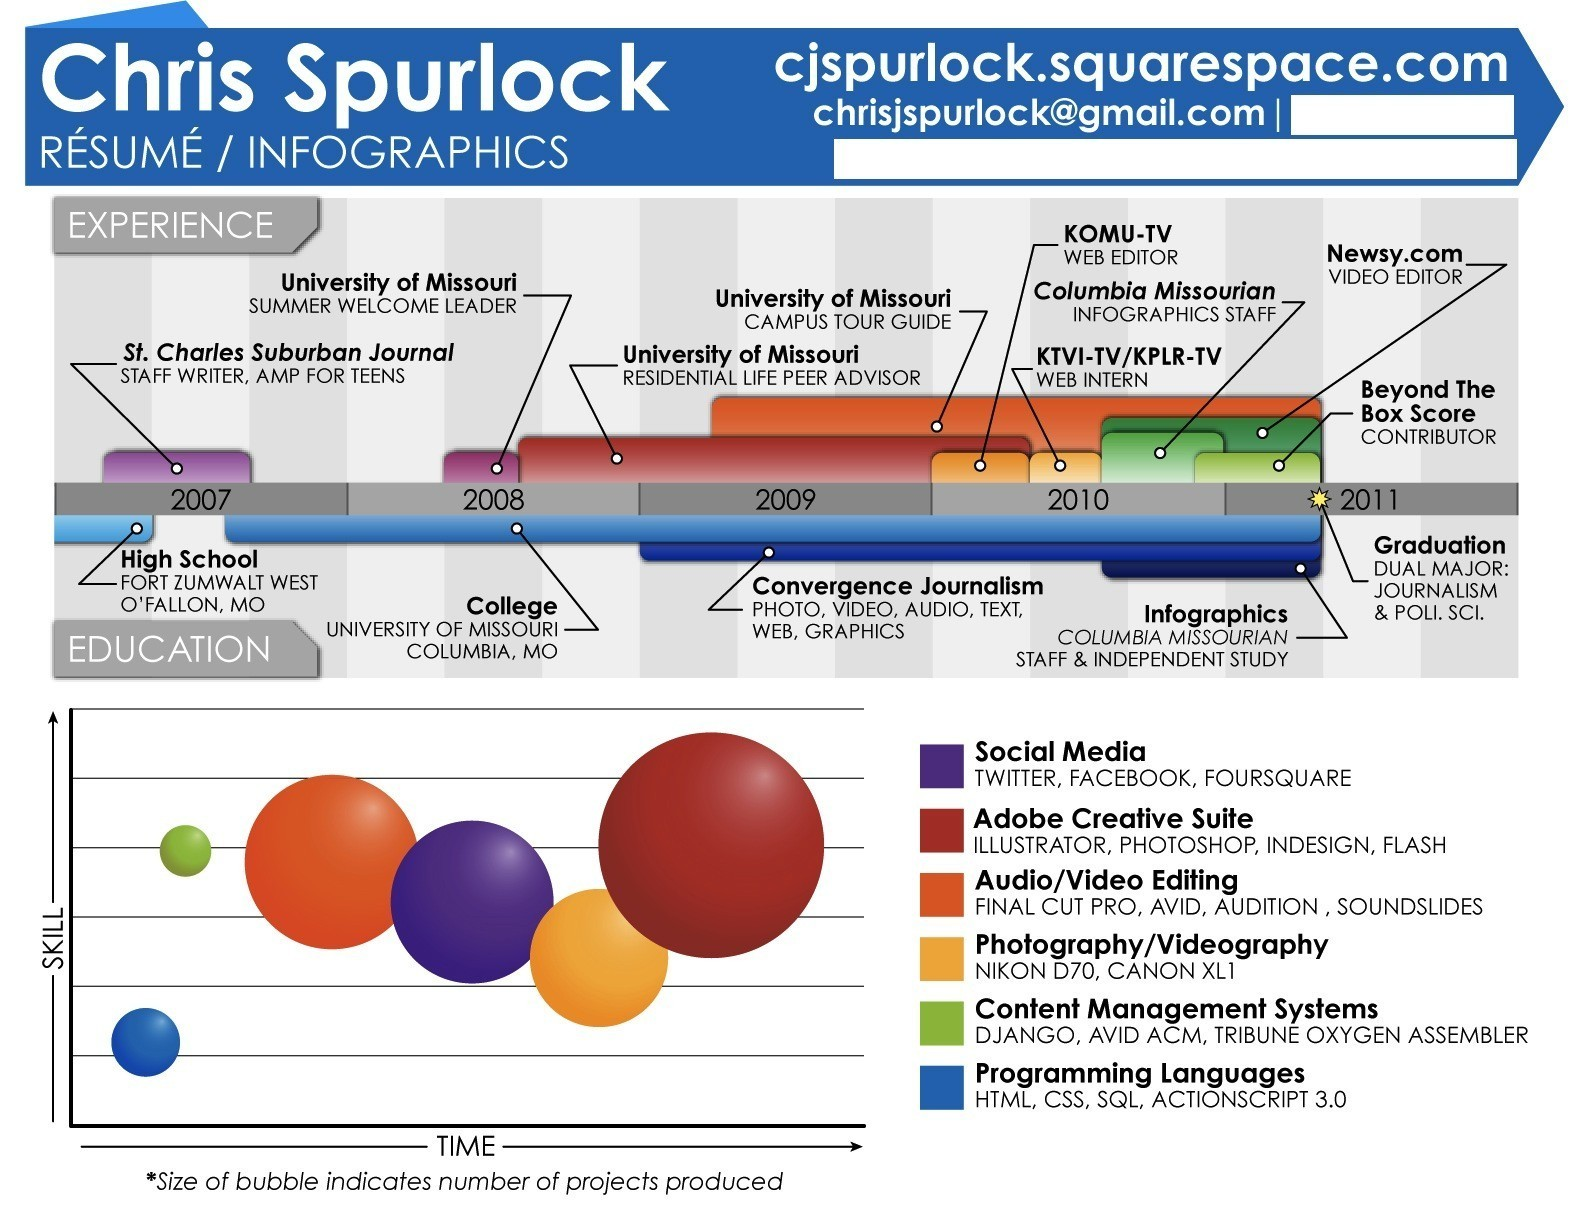 CHRIS-SPURLOCK-RESUME